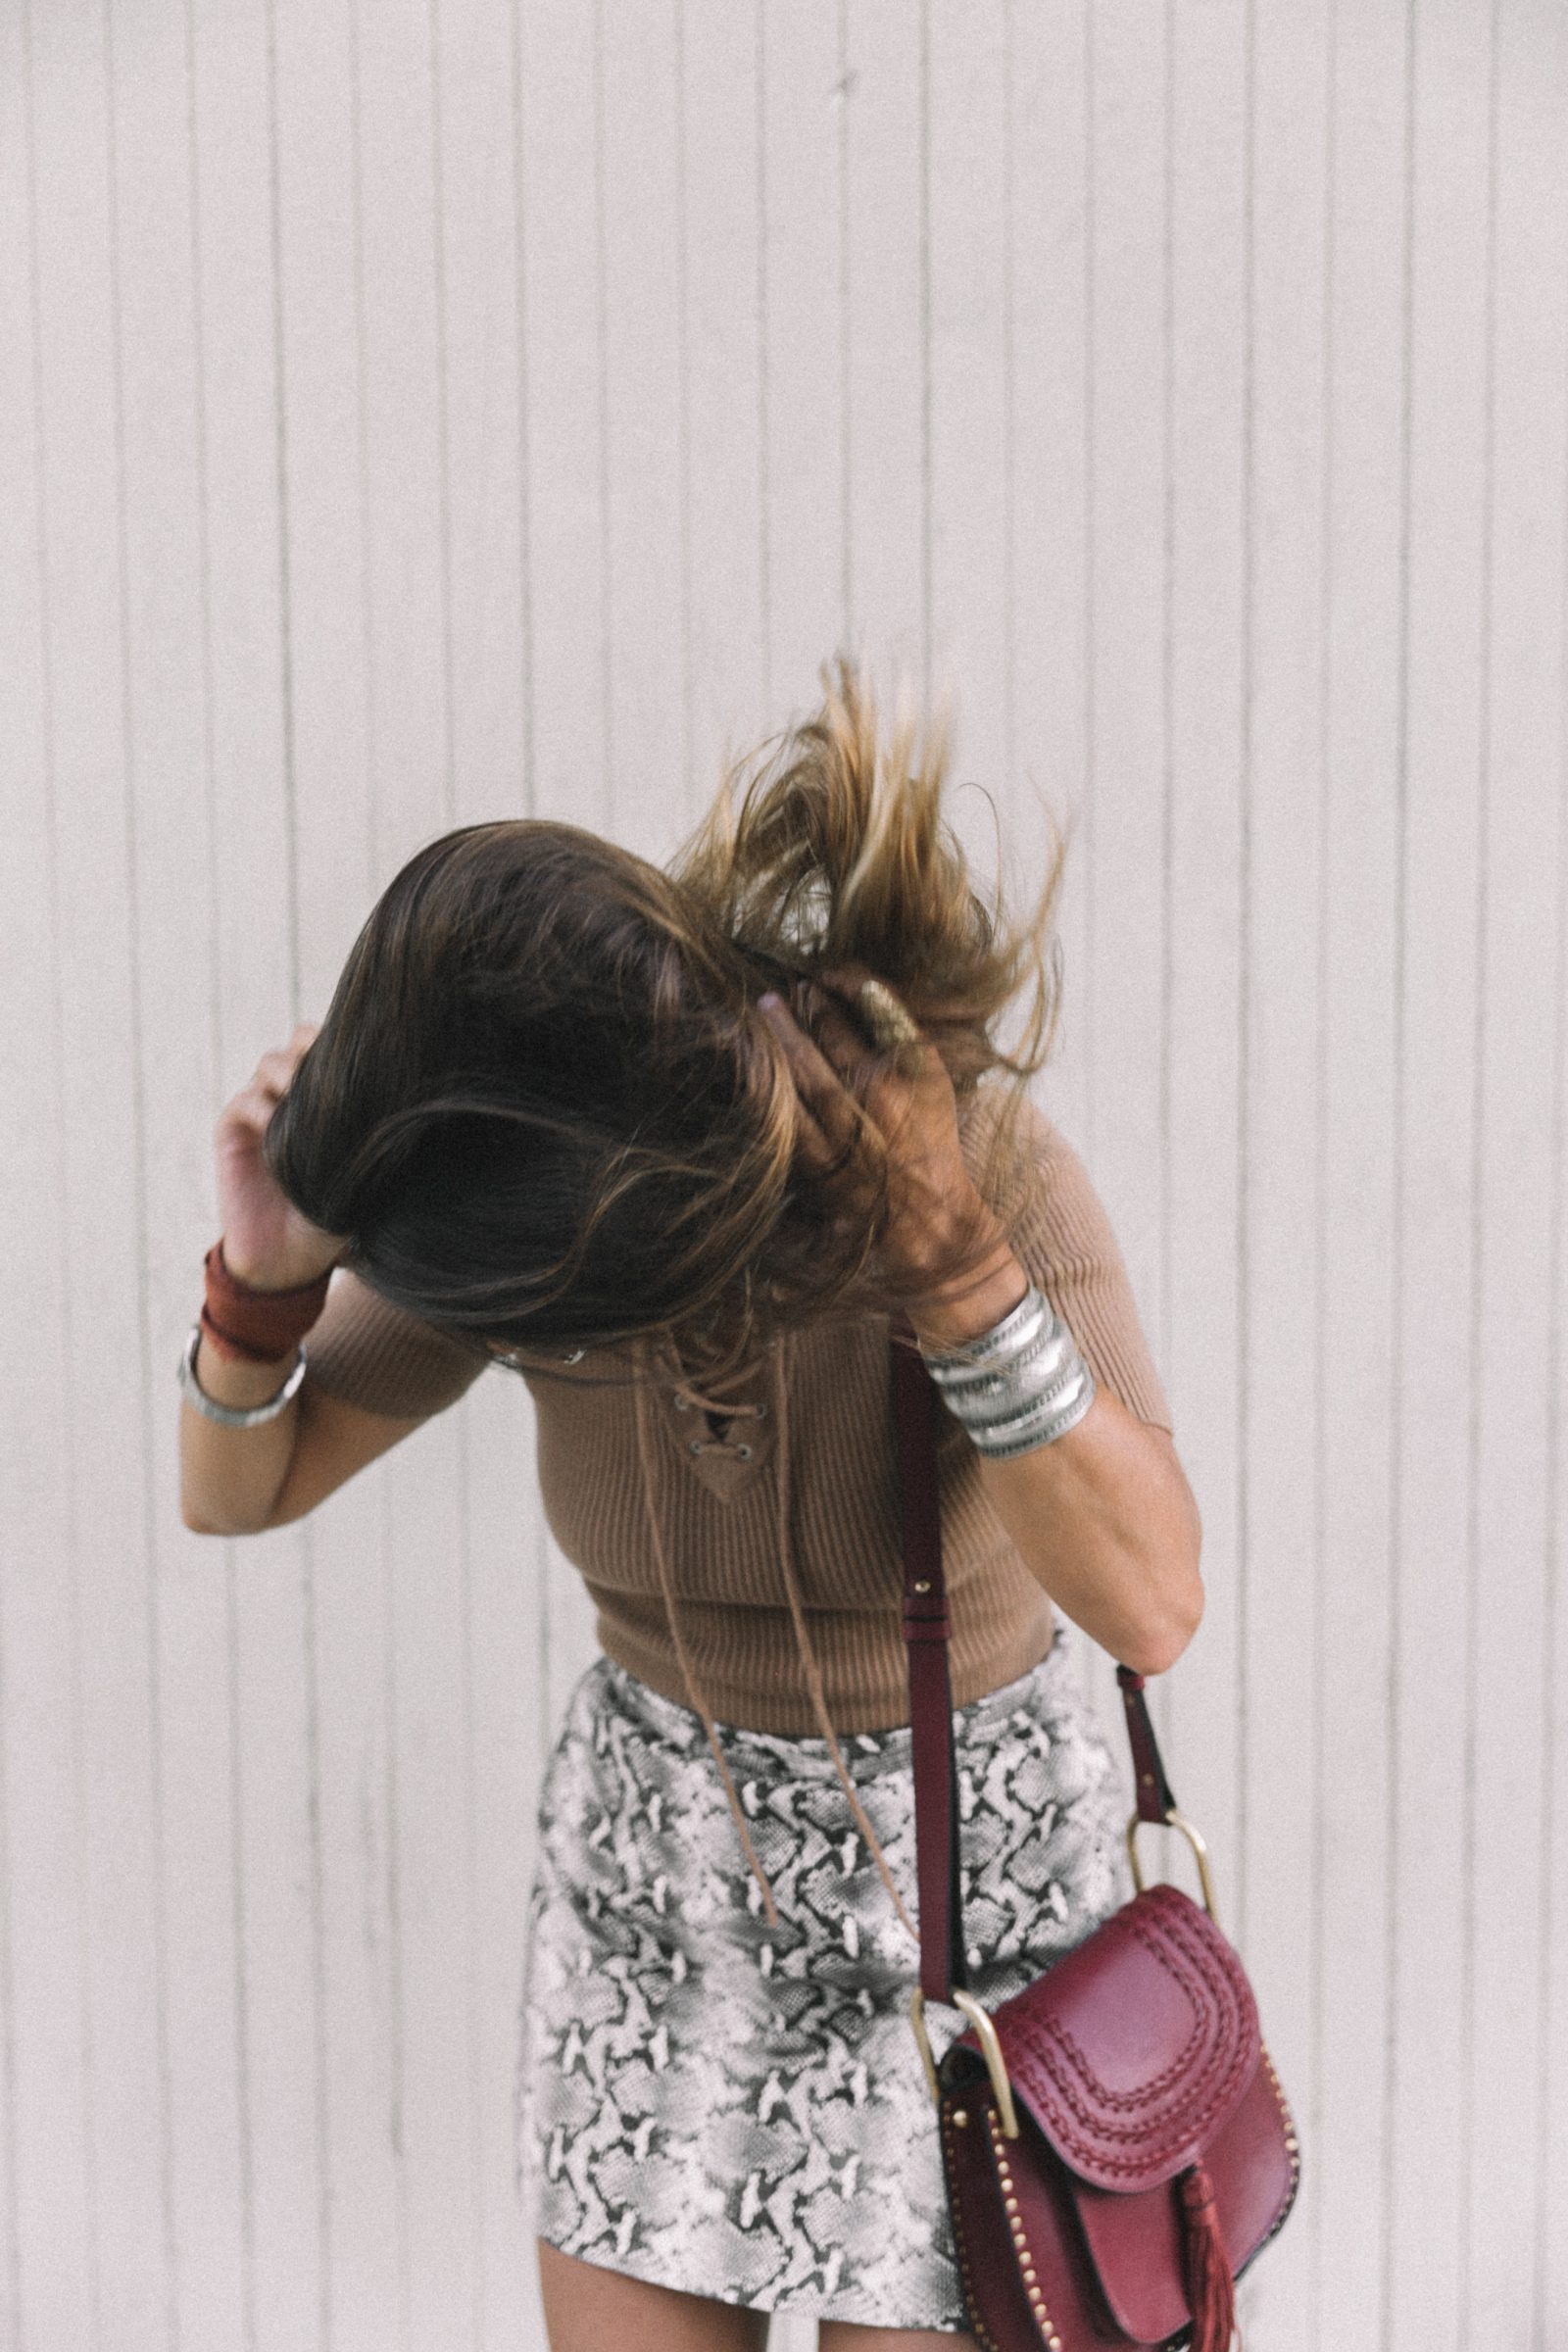 lpa_the_label-revolve_clothing-snake_skirt-lace_up_sweater-knotted_sandals-chloe_hudson_bag-outfit-street_style-los_angeles-103